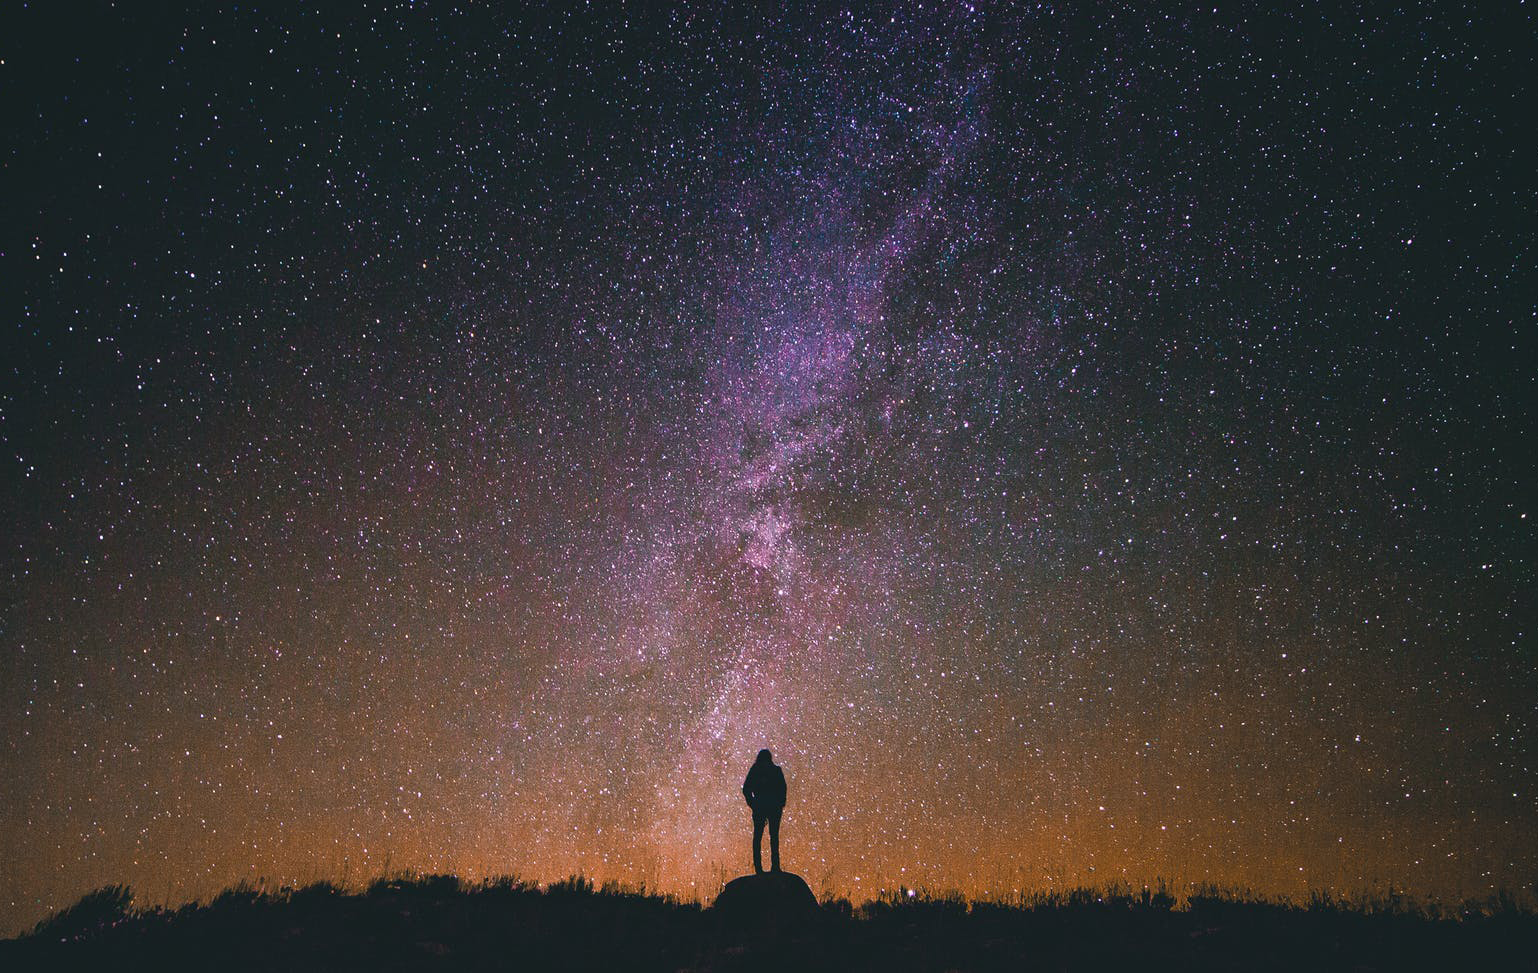 figure standing under a starry night sky observing the universe